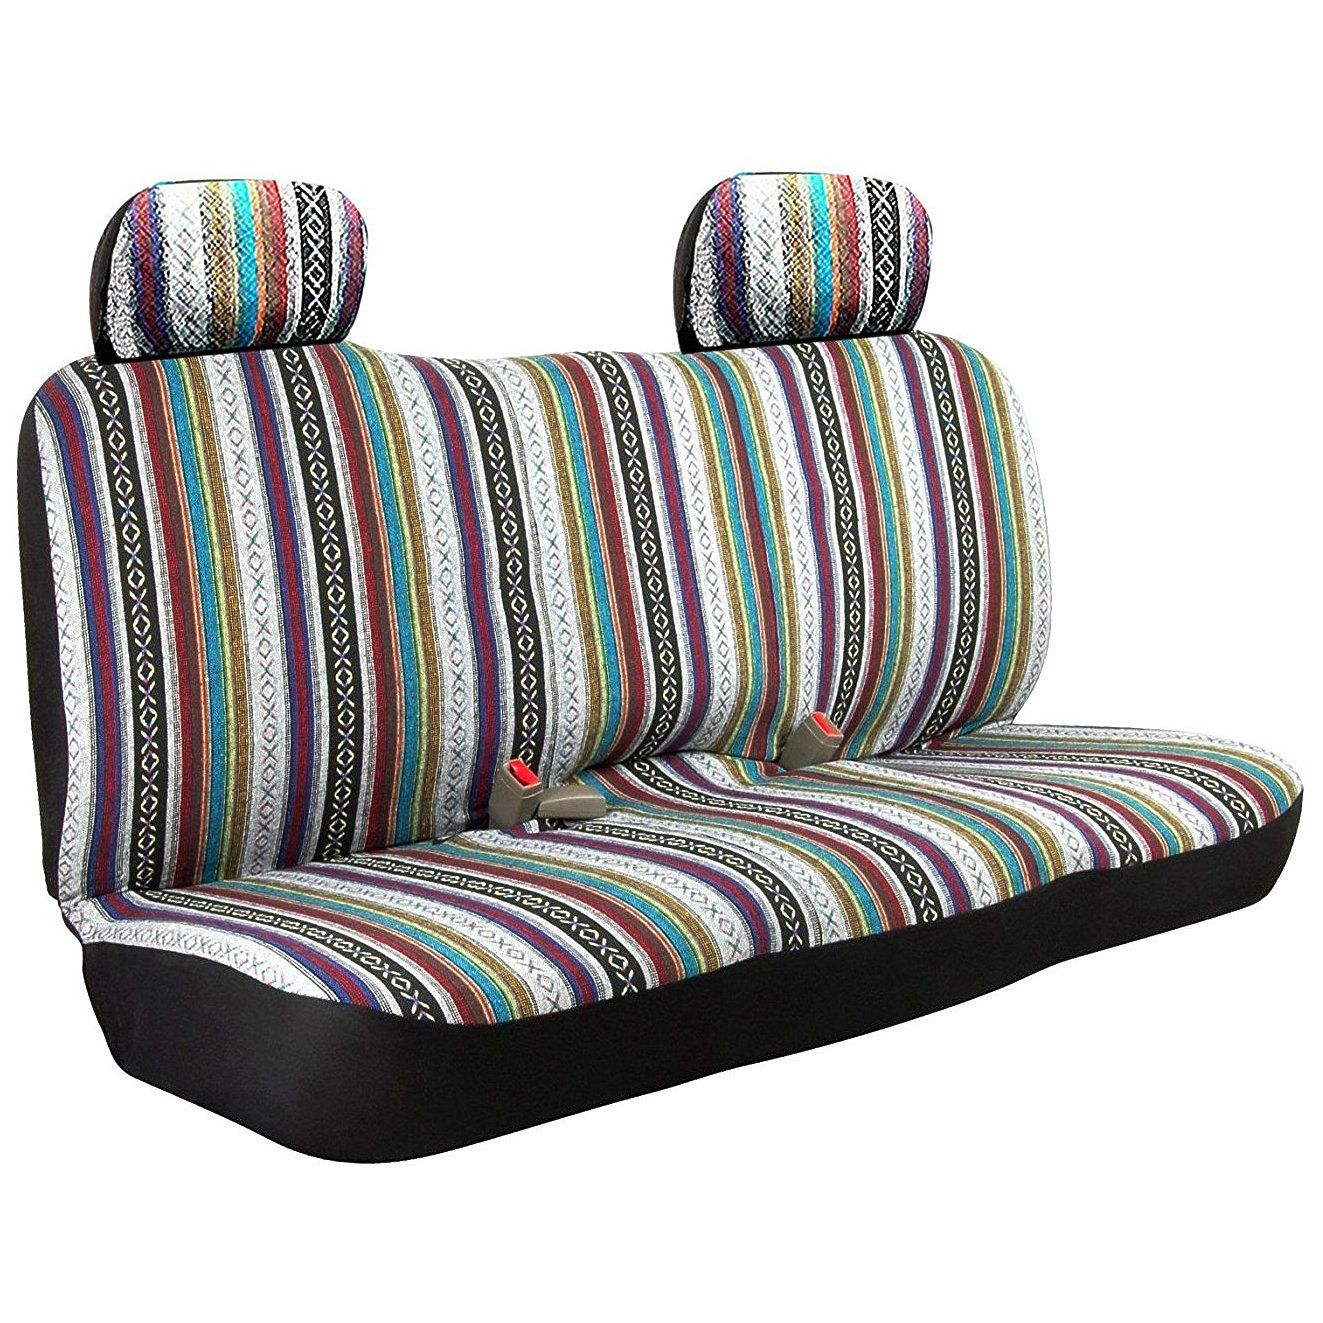 Wondrous Check Out Saddle Blanket Weave Baja Inca Bench Seat Cover Caraccident5 Cool Chair Designs And Ideas Caraccident5Info